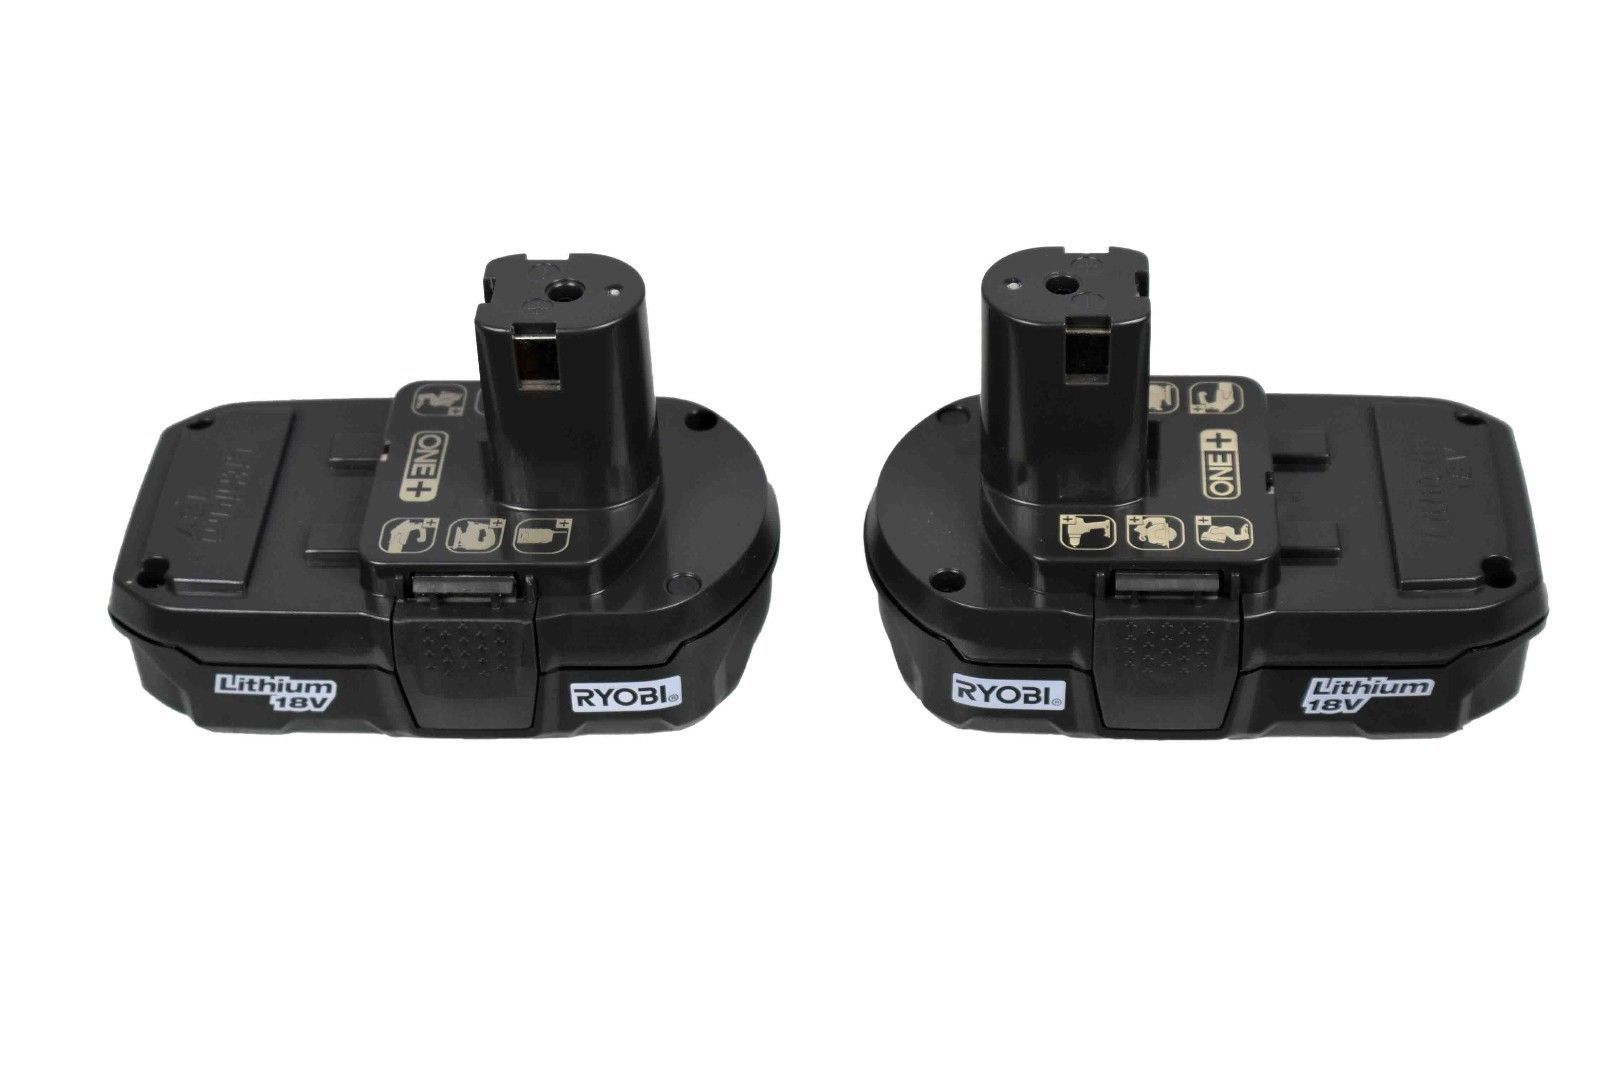 Ryobi-One-P102-18V-Lithium-Ion-Battery-Two-Pack-image-5